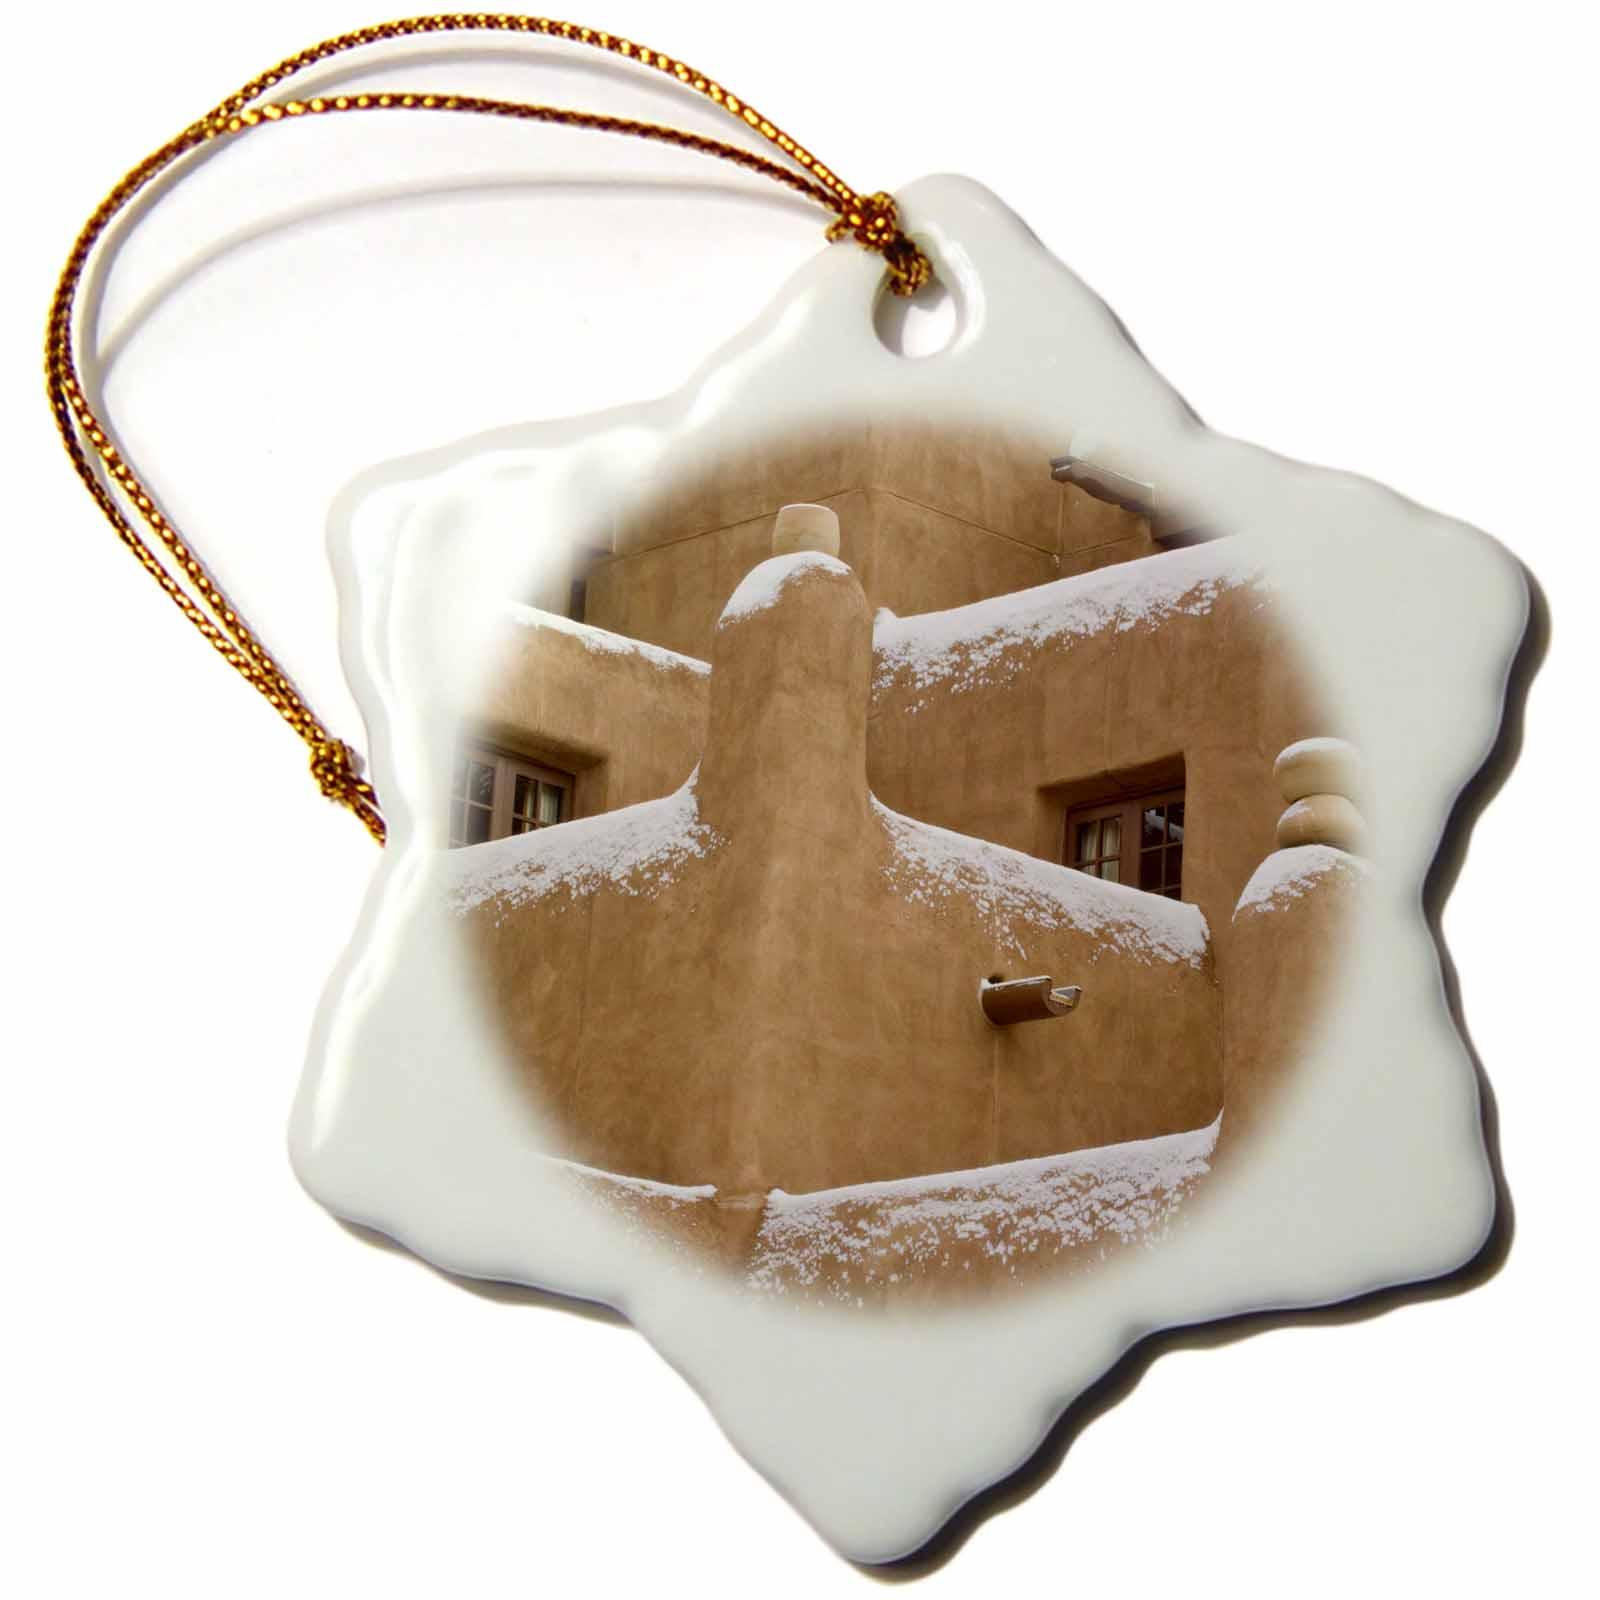 3dRose New Mexico, Santa Fe, Snow on Inn at Loretto - US32 RTI0110 - Rob Tilley, Snowflake Ornament, Porcelain, 3-inch